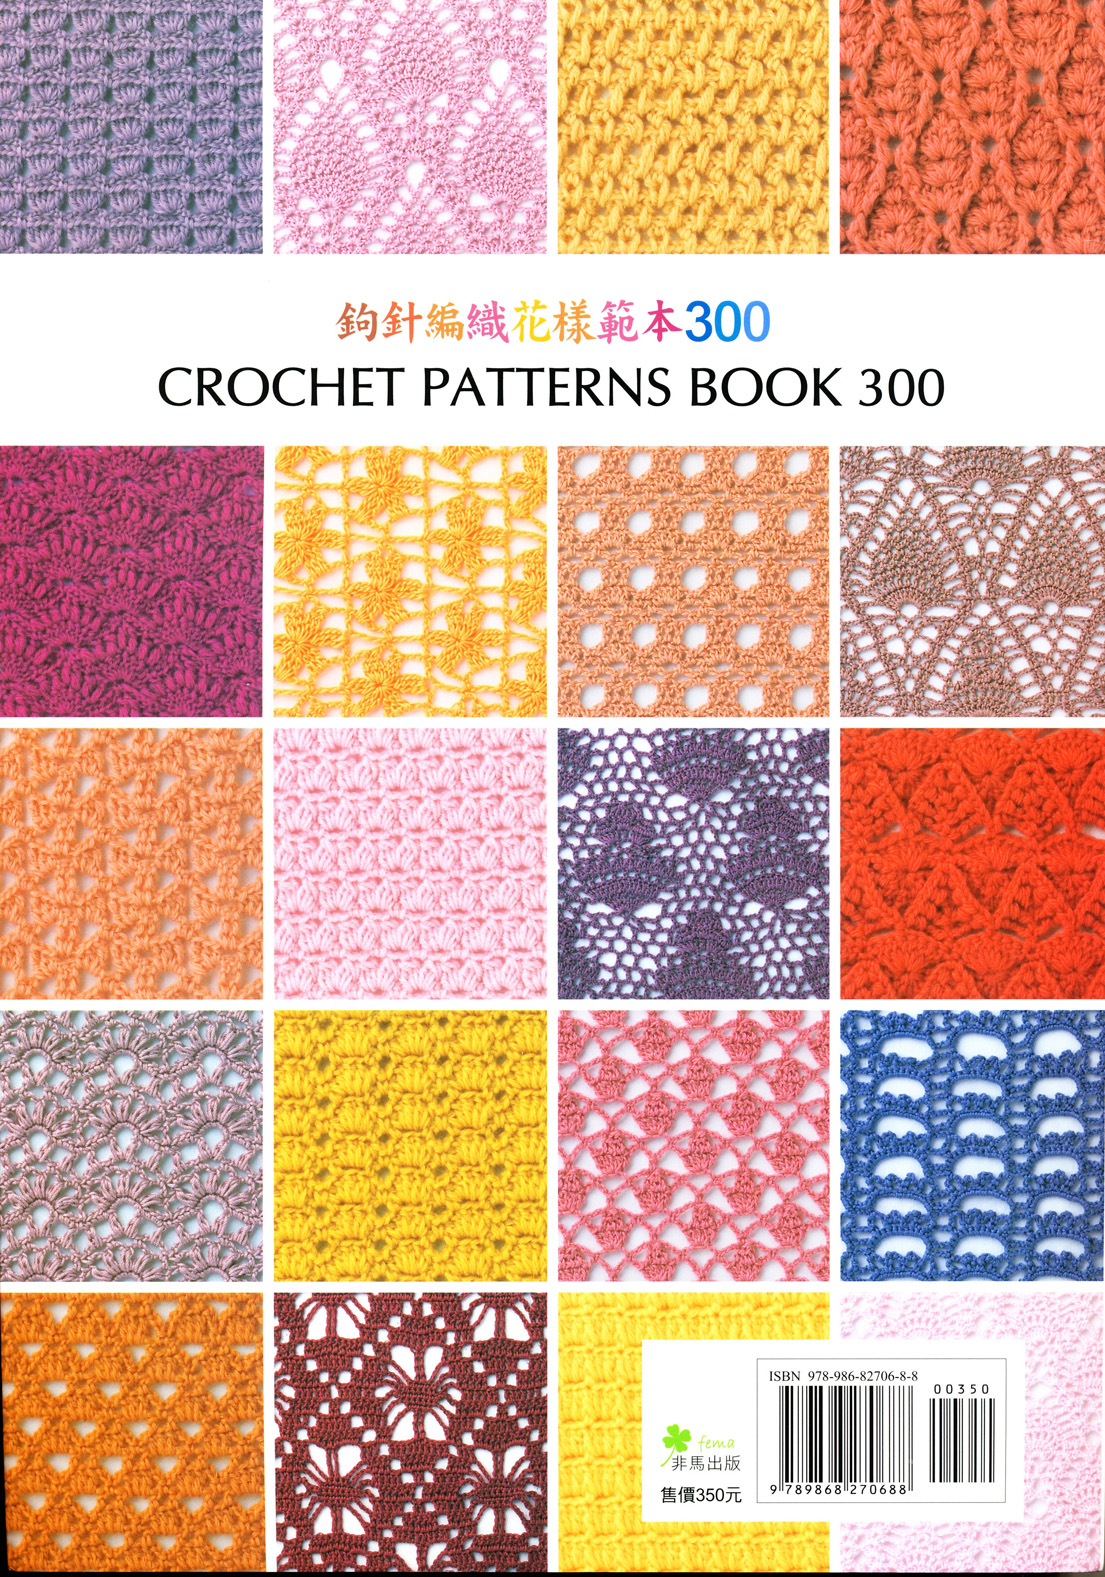 Crochet Stitches Directory : MyCreativeCard.com: Japanese Crochet 300 Stitches Guide Dictionary